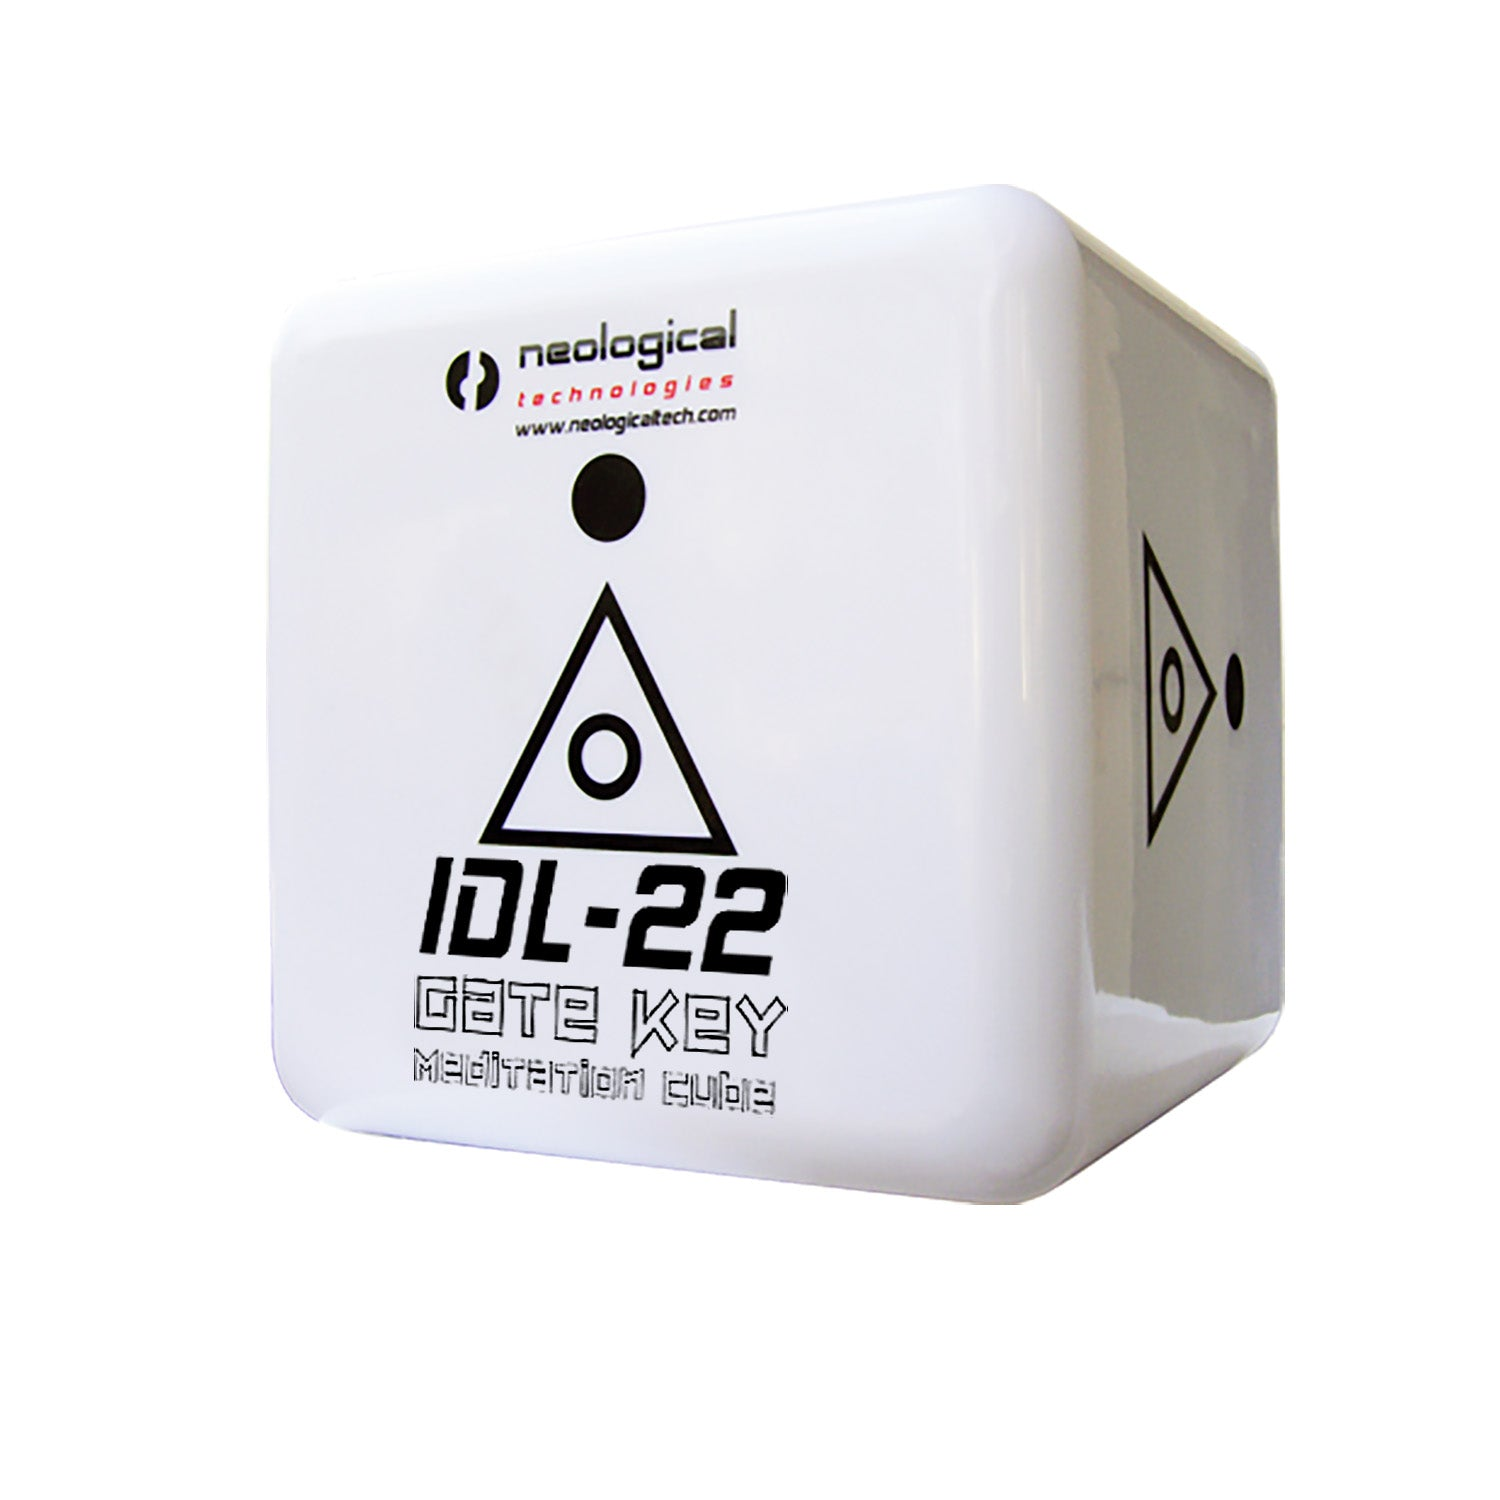 Neo IDL-22 Gatekey Light Body Activation - Preorder ONLY - October 20, 2018